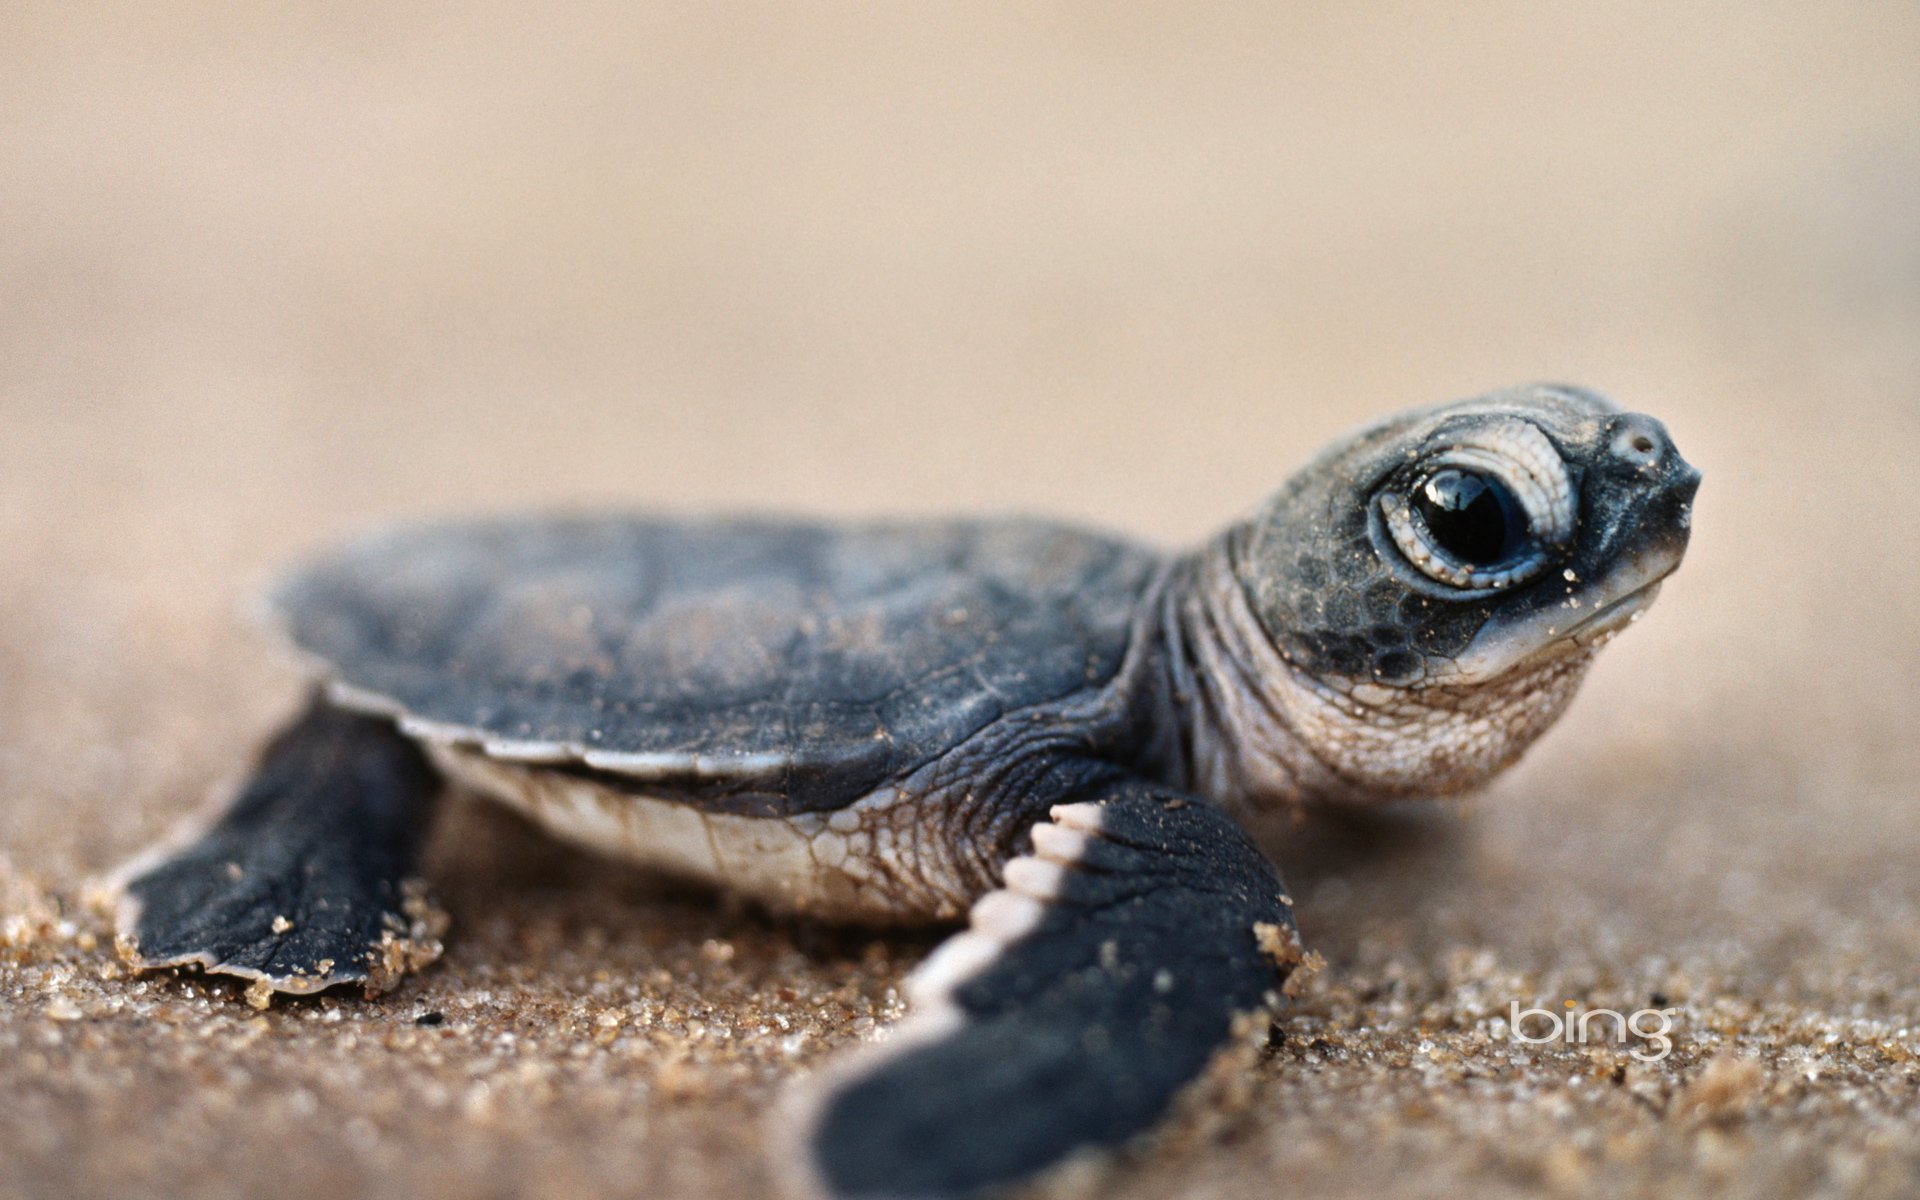 Awesome Turtle free wallpaper ID:29804 for hd 1920x1200 desktop